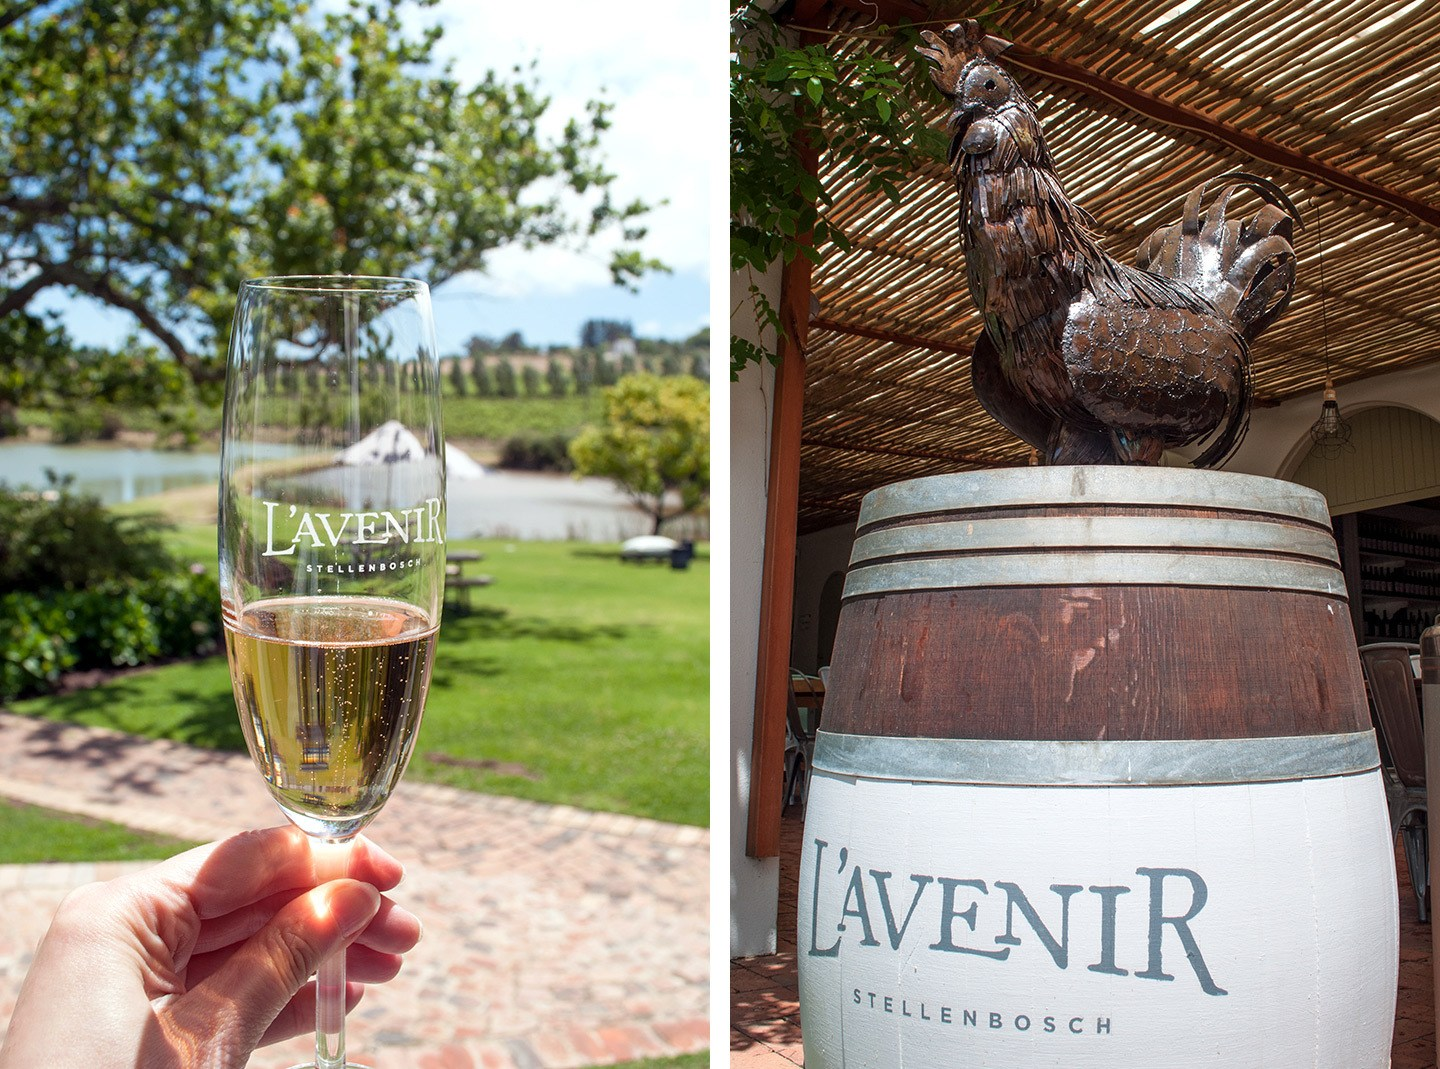 L'Avenir in the Cape Winelands at Stellenbosch South Africa